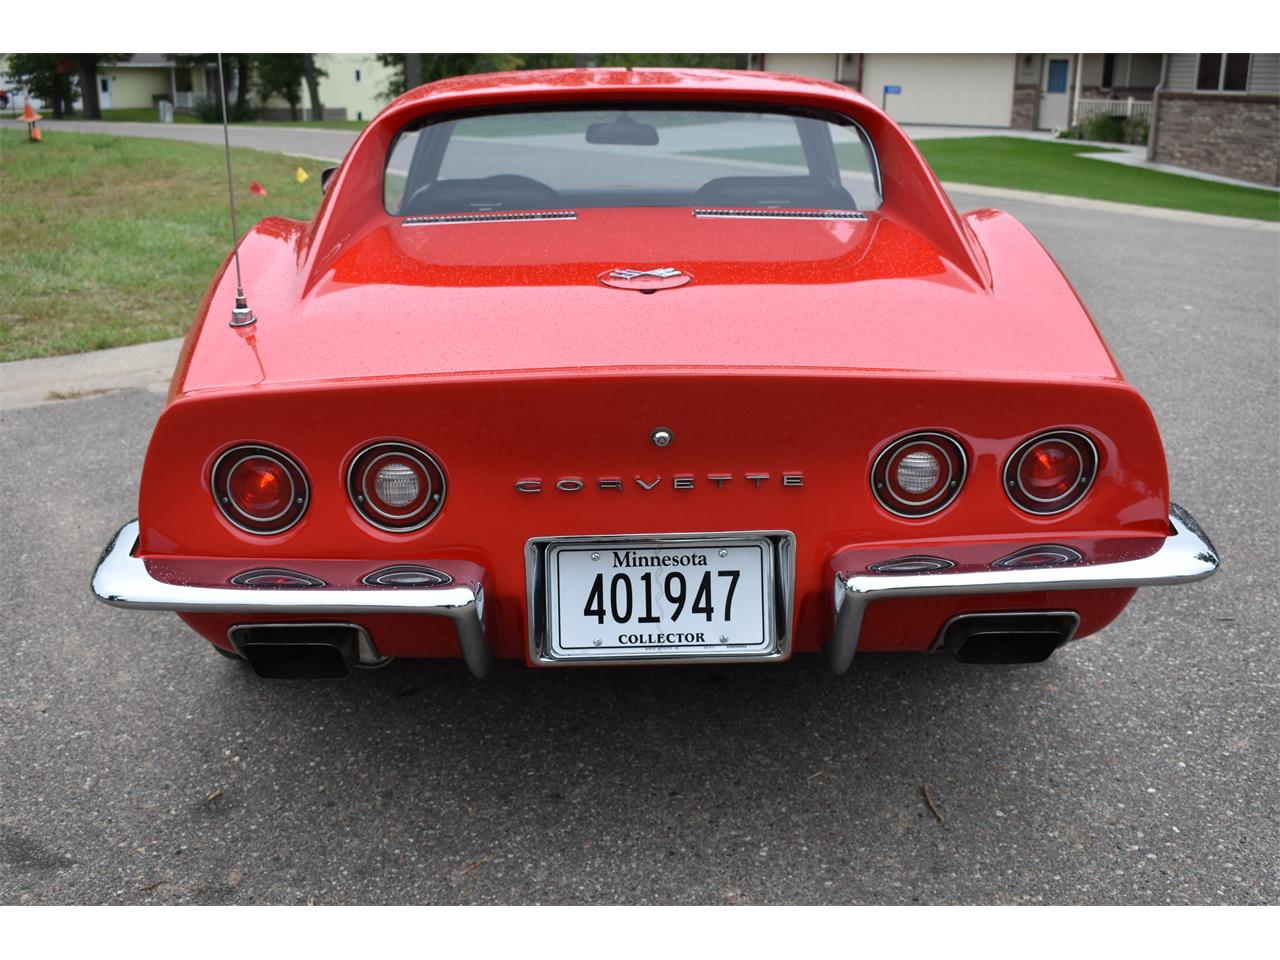 Large Picture of 1972 Chevrolet Corvette located in Minnesota - $27,000.00 - OMCE